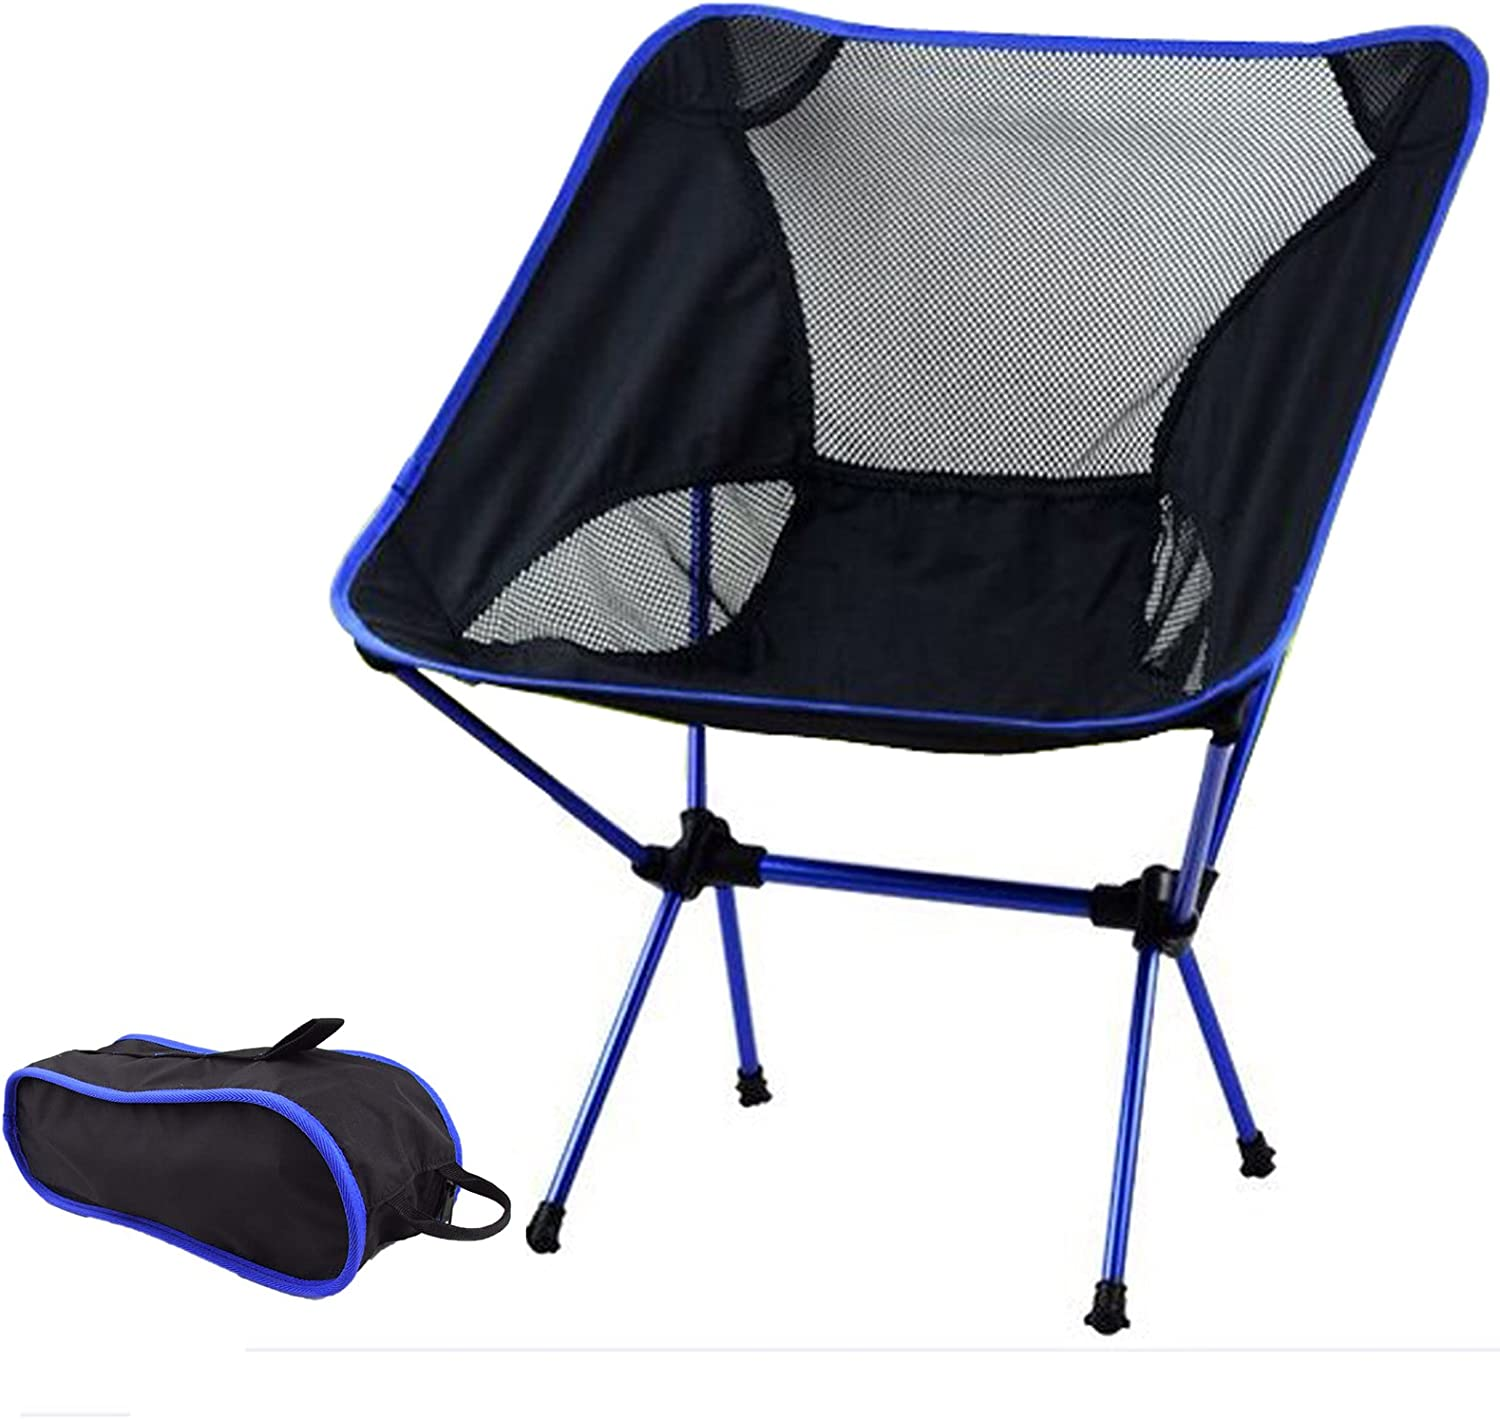 Portable Lightweight Folding Camping Chair Stool Backpacking Hiking Picnic Blue